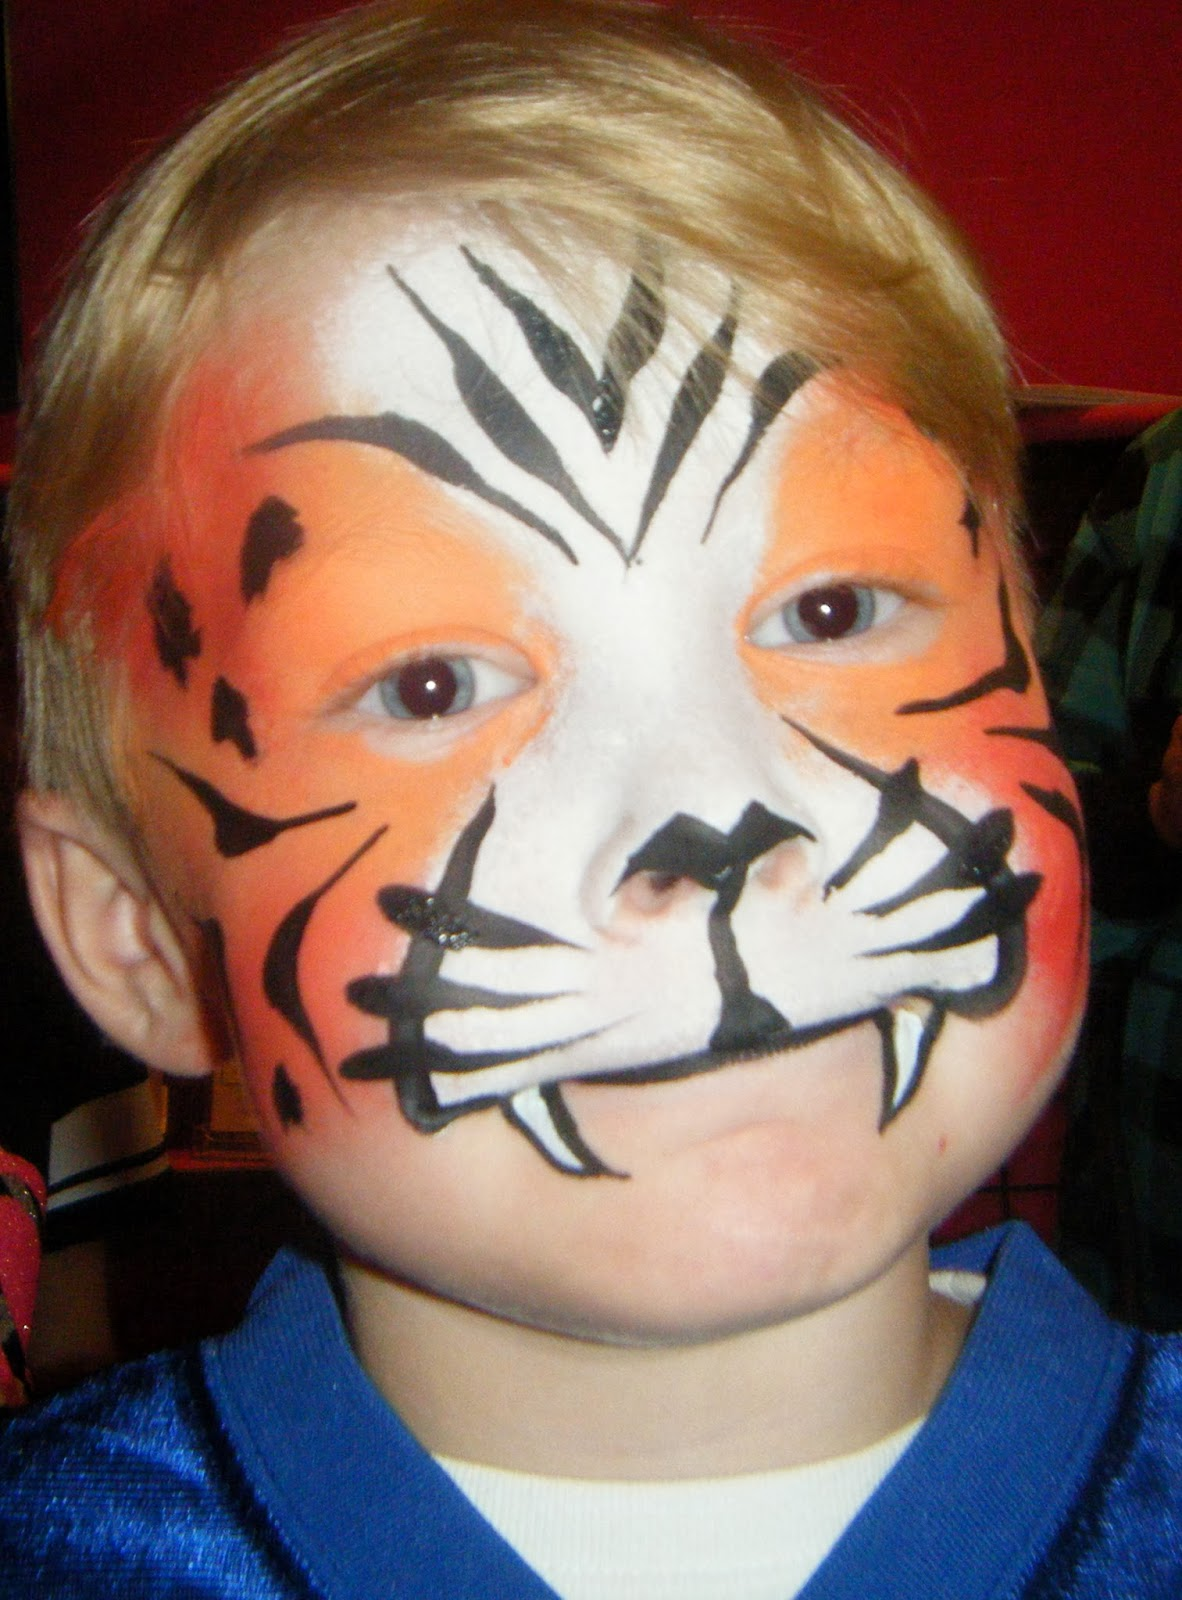 Easy tiger face paint - photo#17